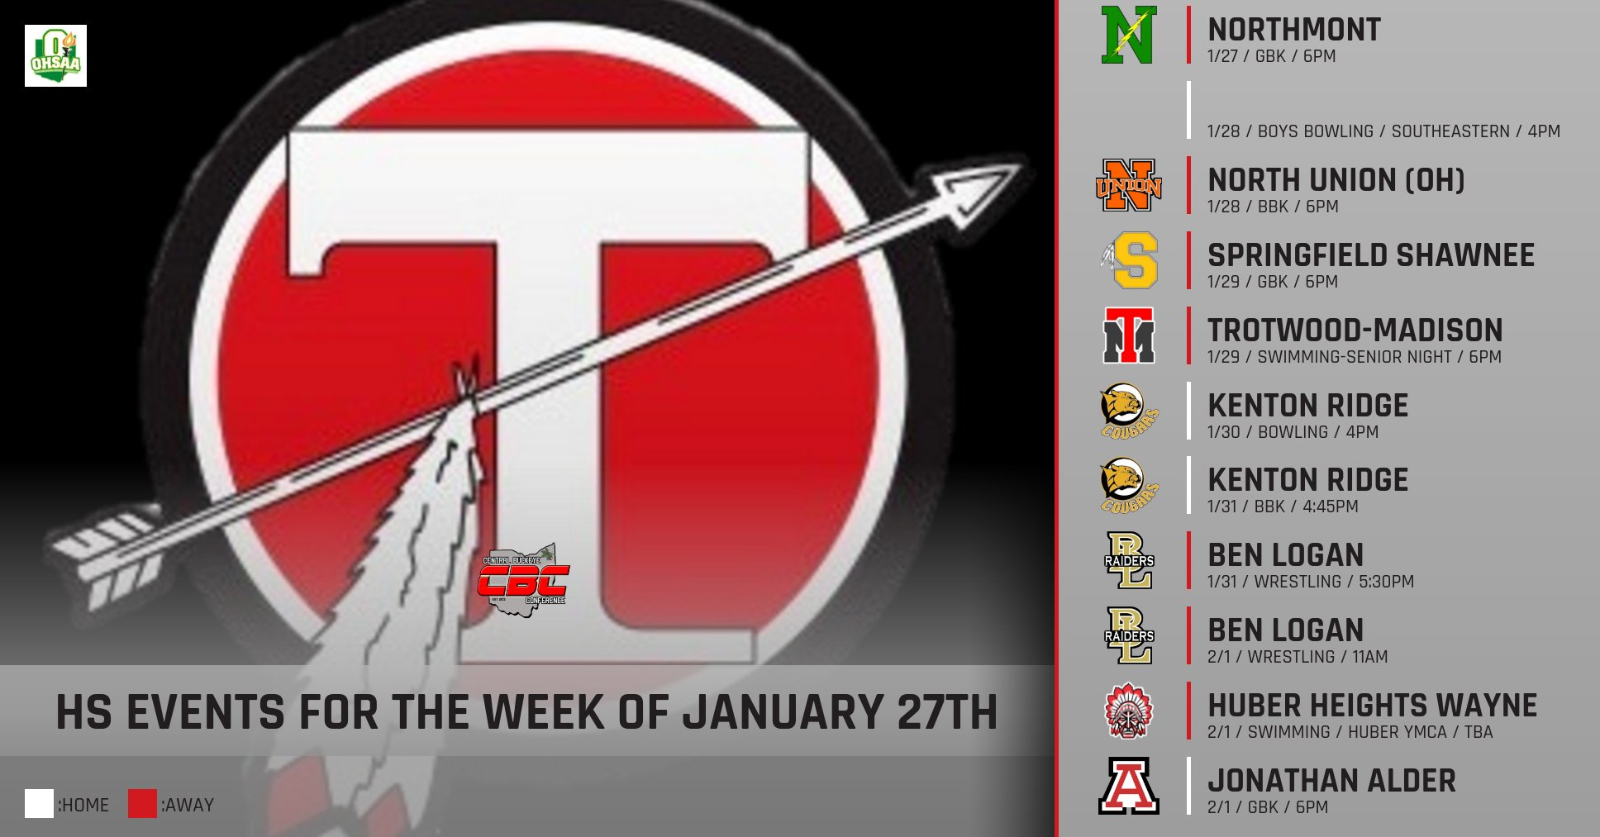 High School Events for the Week of January 27th